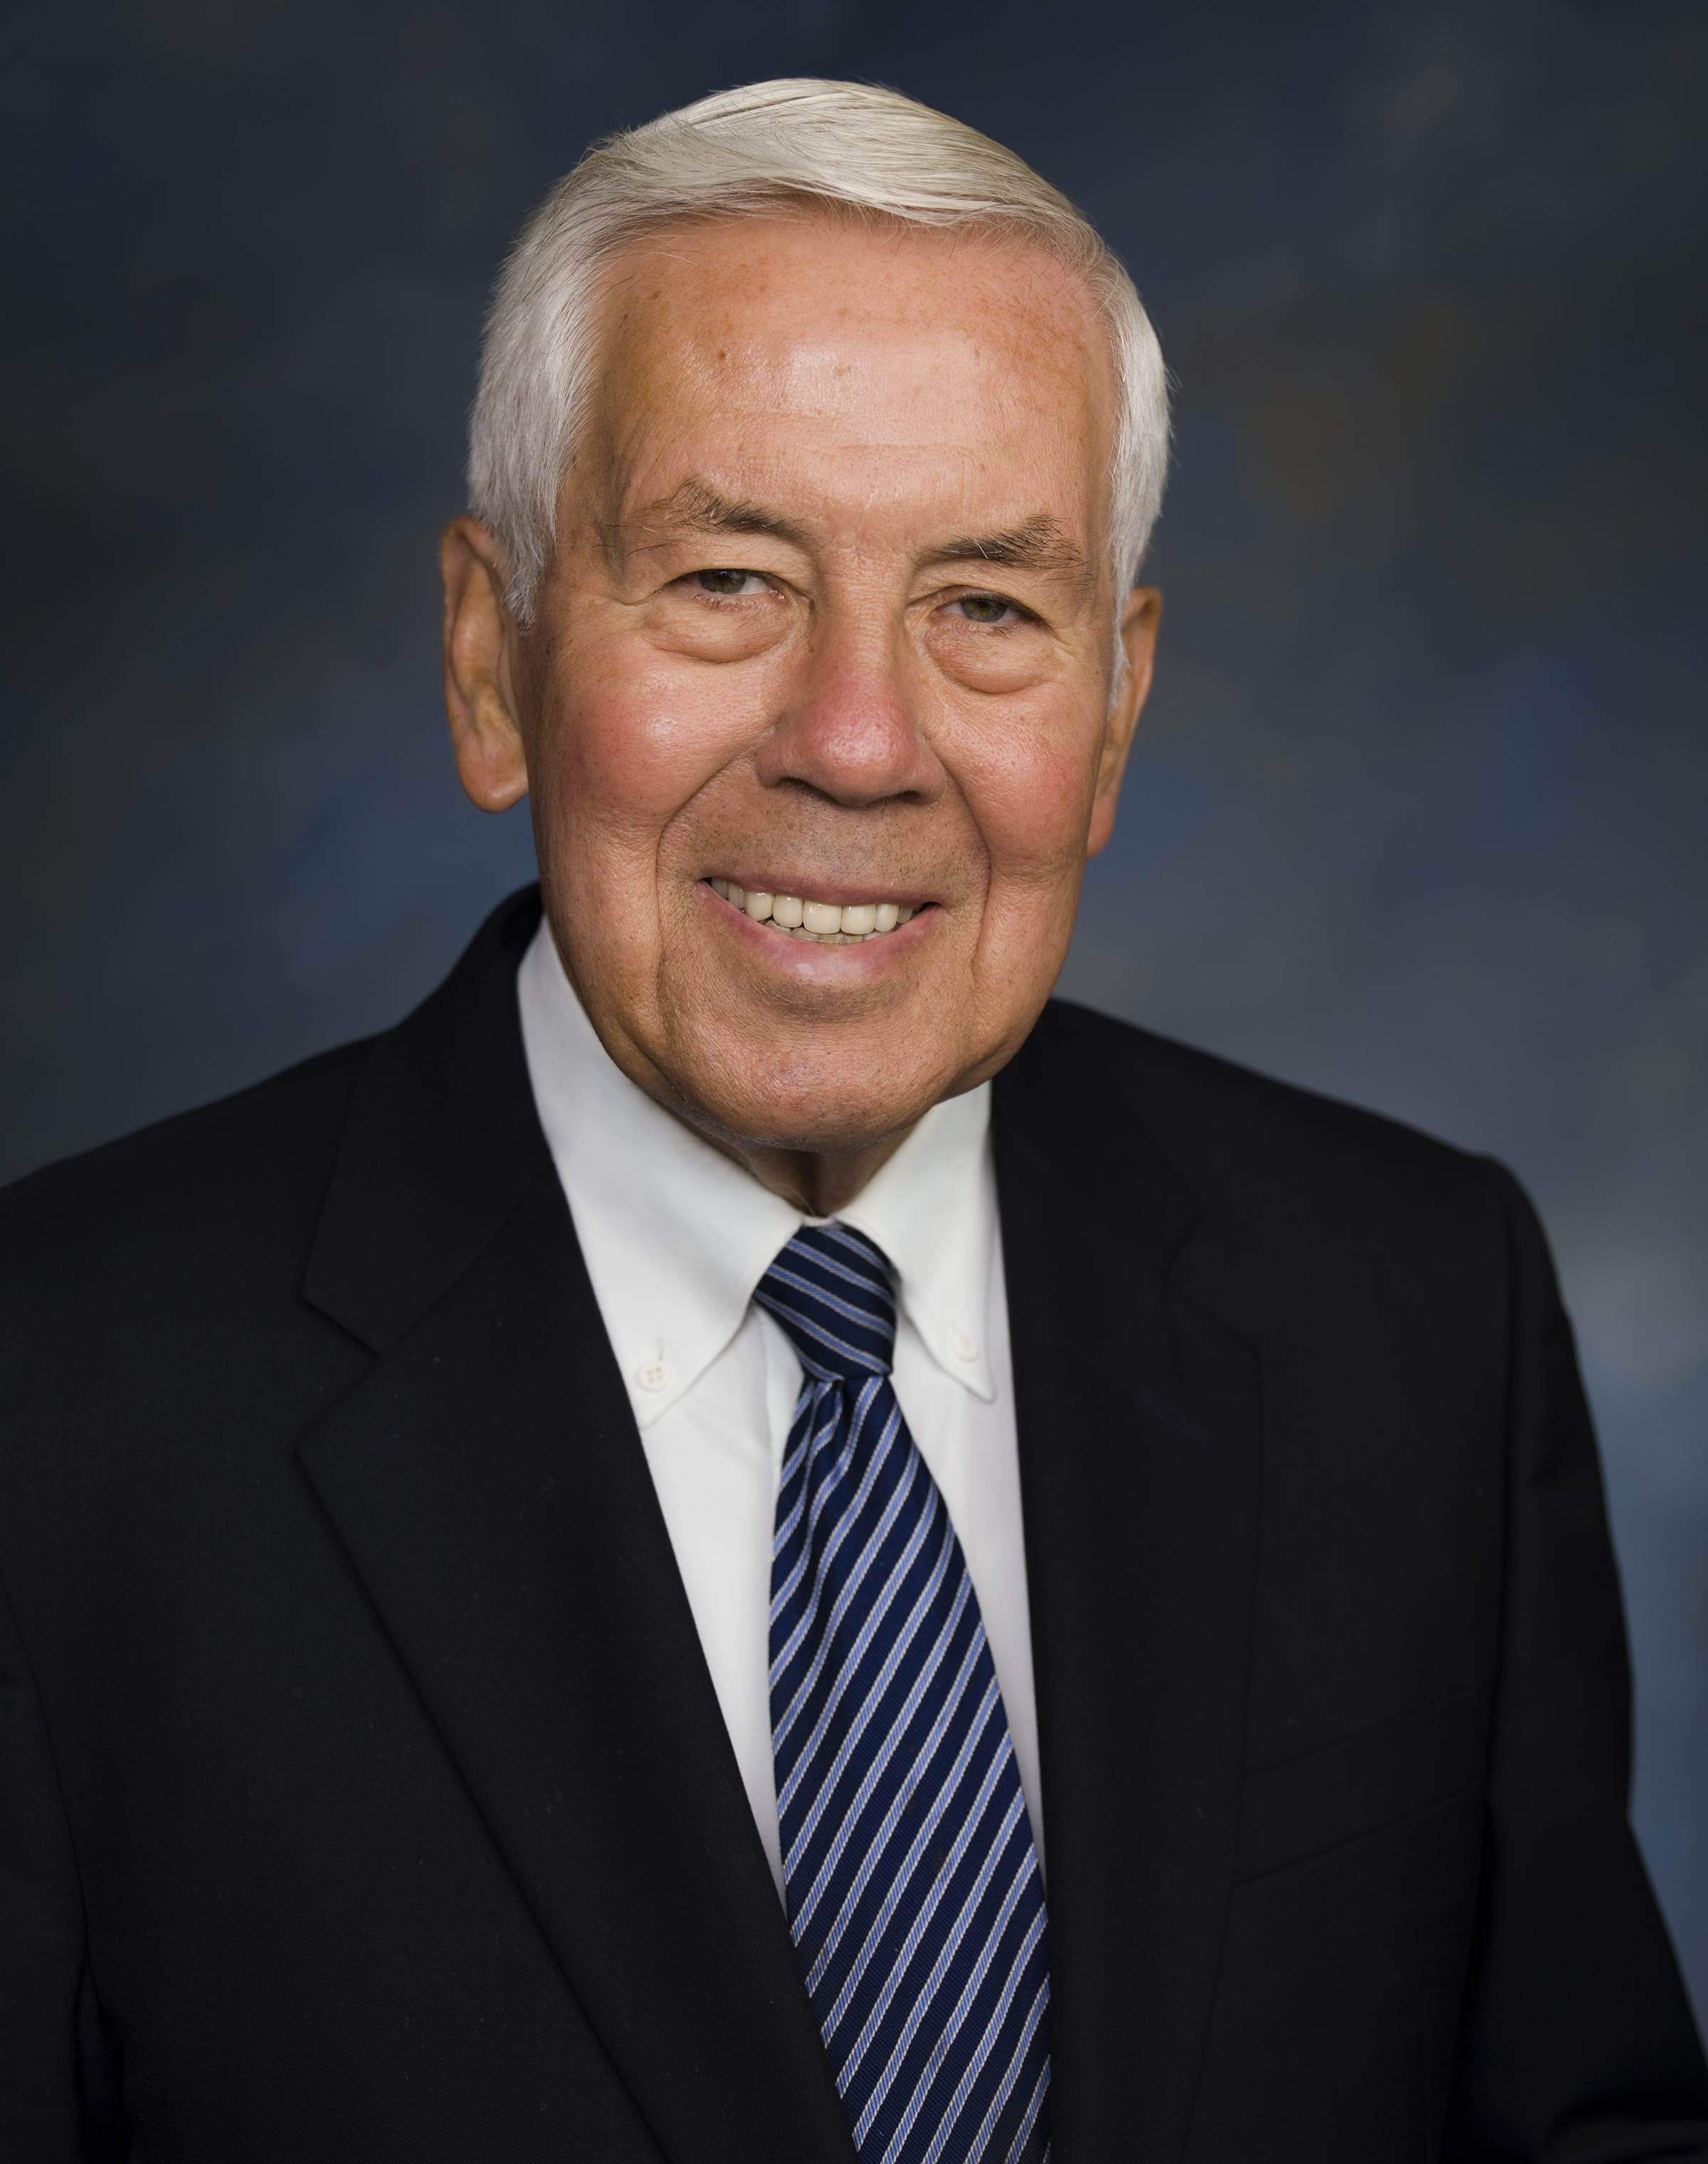 Richard Lugar's quote #6